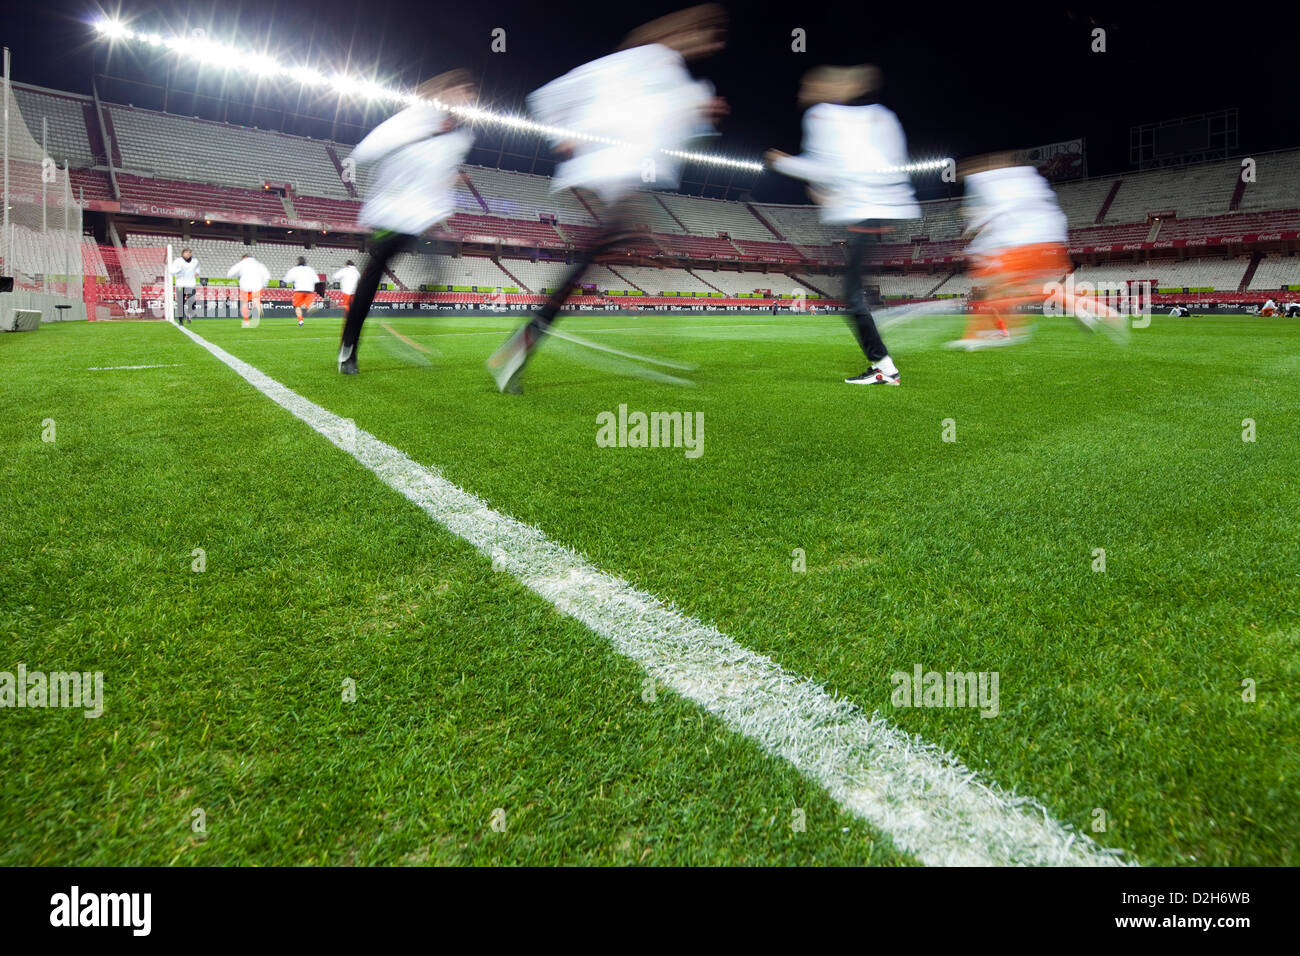 Seville, Spain, football players in a pub in the evening - Stock Image